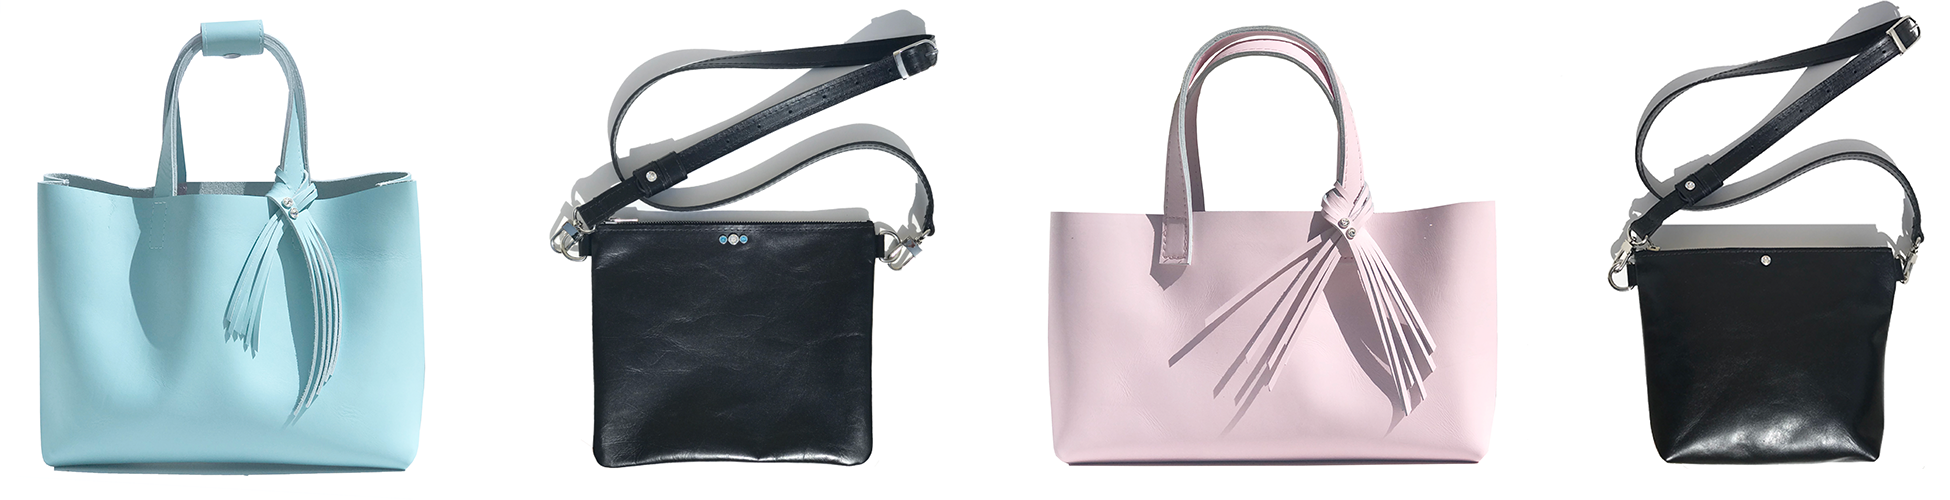 MONOLISA Leather Totes and Crossbody - Bags Made in California